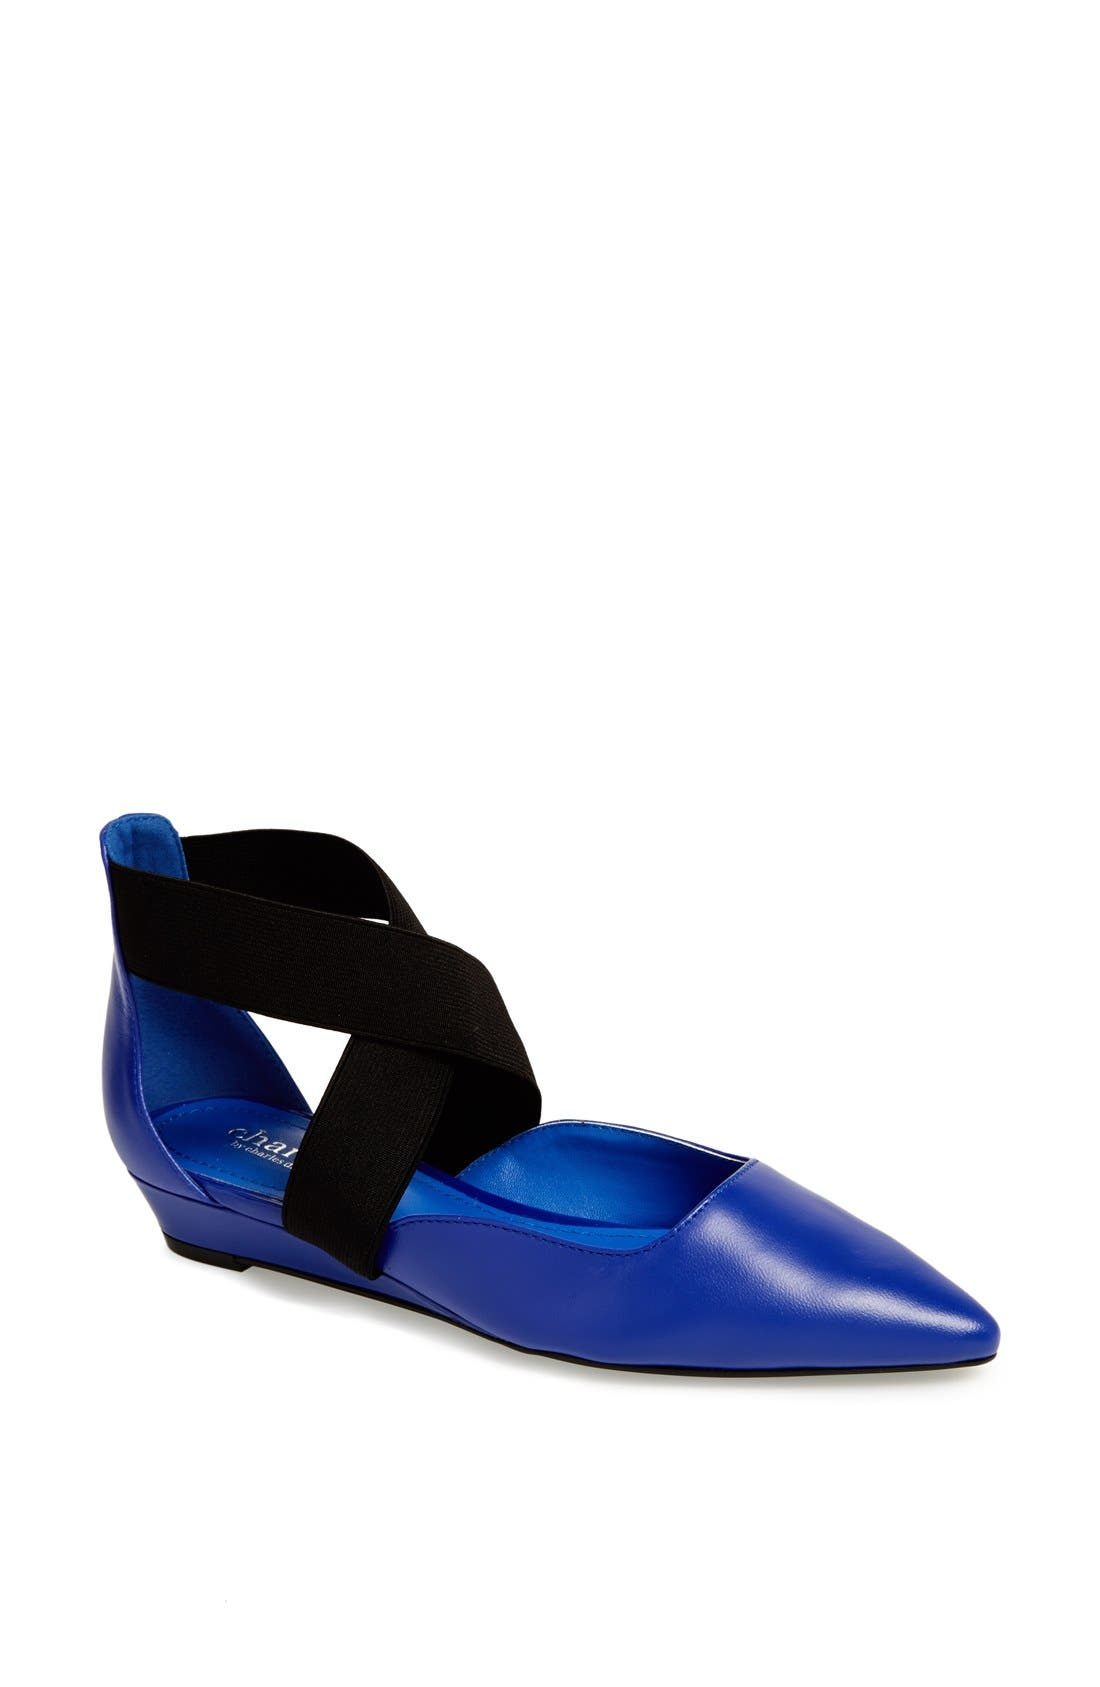 Alternate Image 1 Selected - Charles by Charles David 'Bisque' Pointy Toe Flat